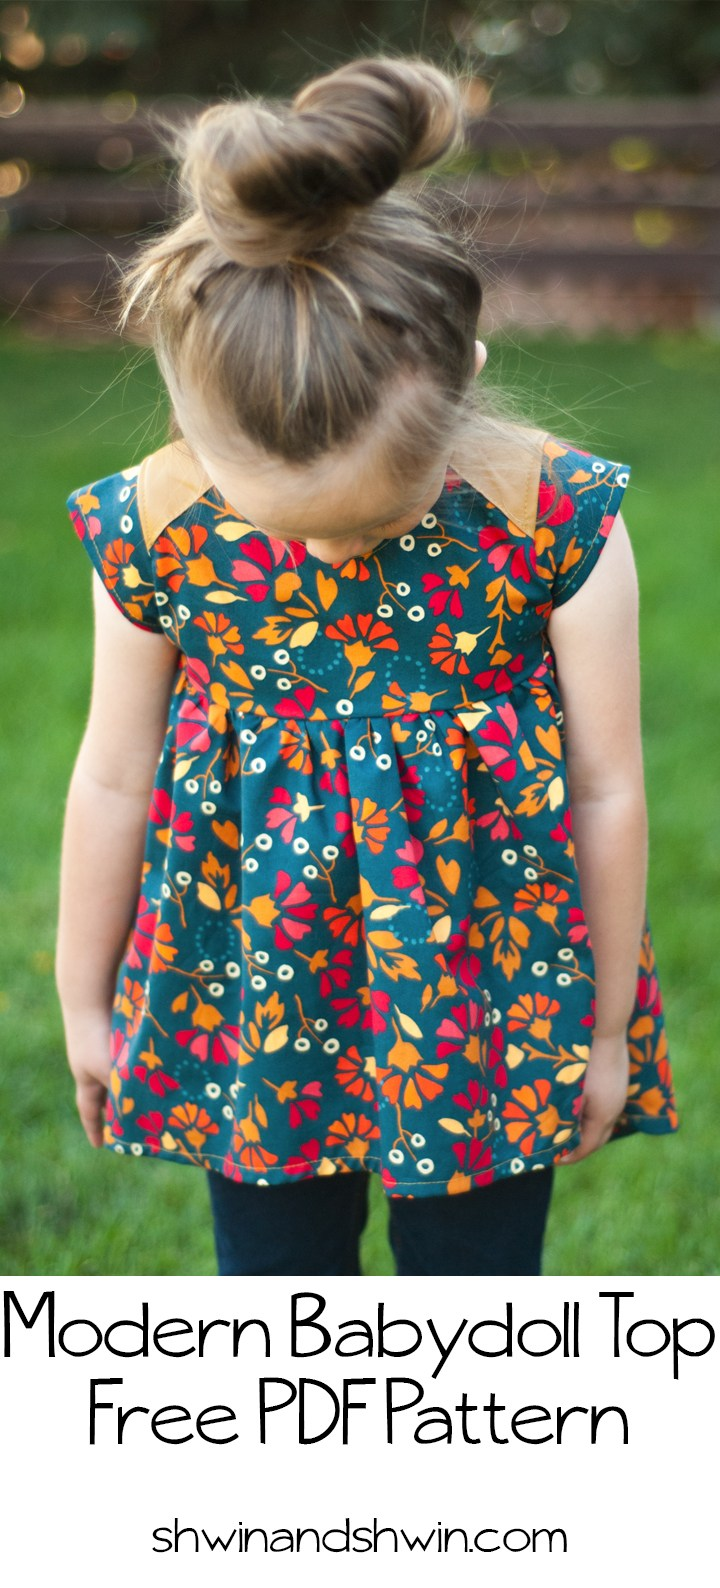 Modern Baby Doll Top from Schwin & Schwin